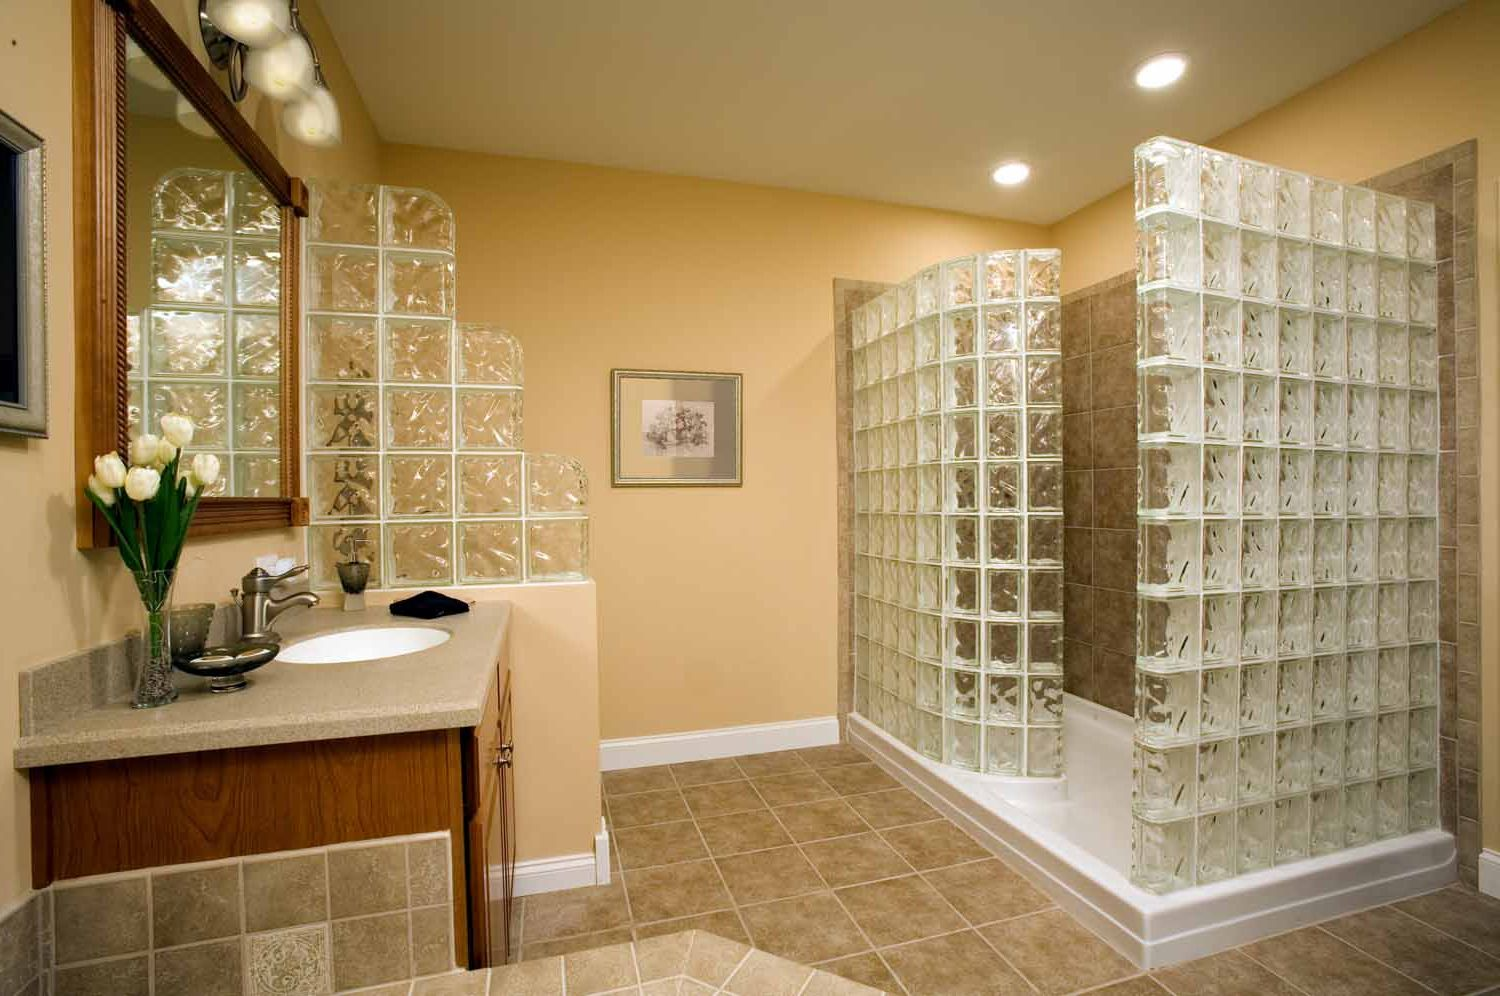 glass-block-ideas-traditional-small-bathroom-renovations